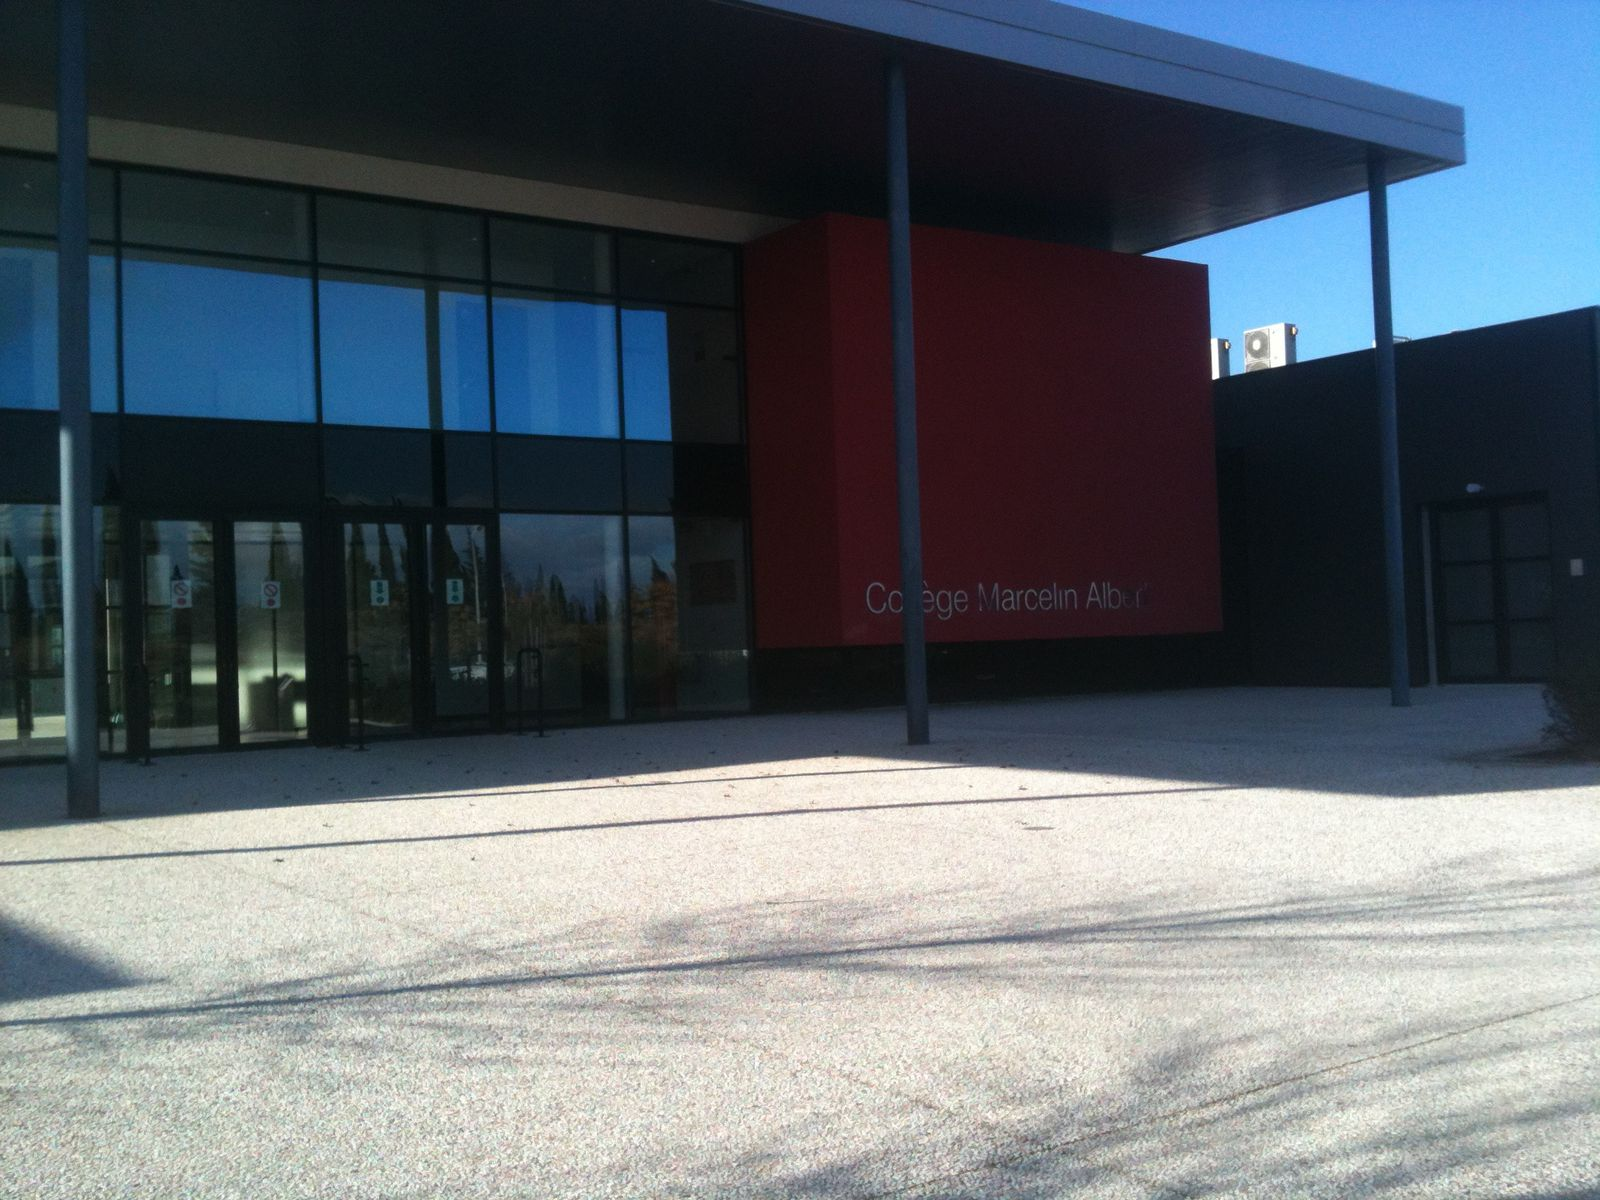 This is the front of our school. We come here every day at 8:15am.